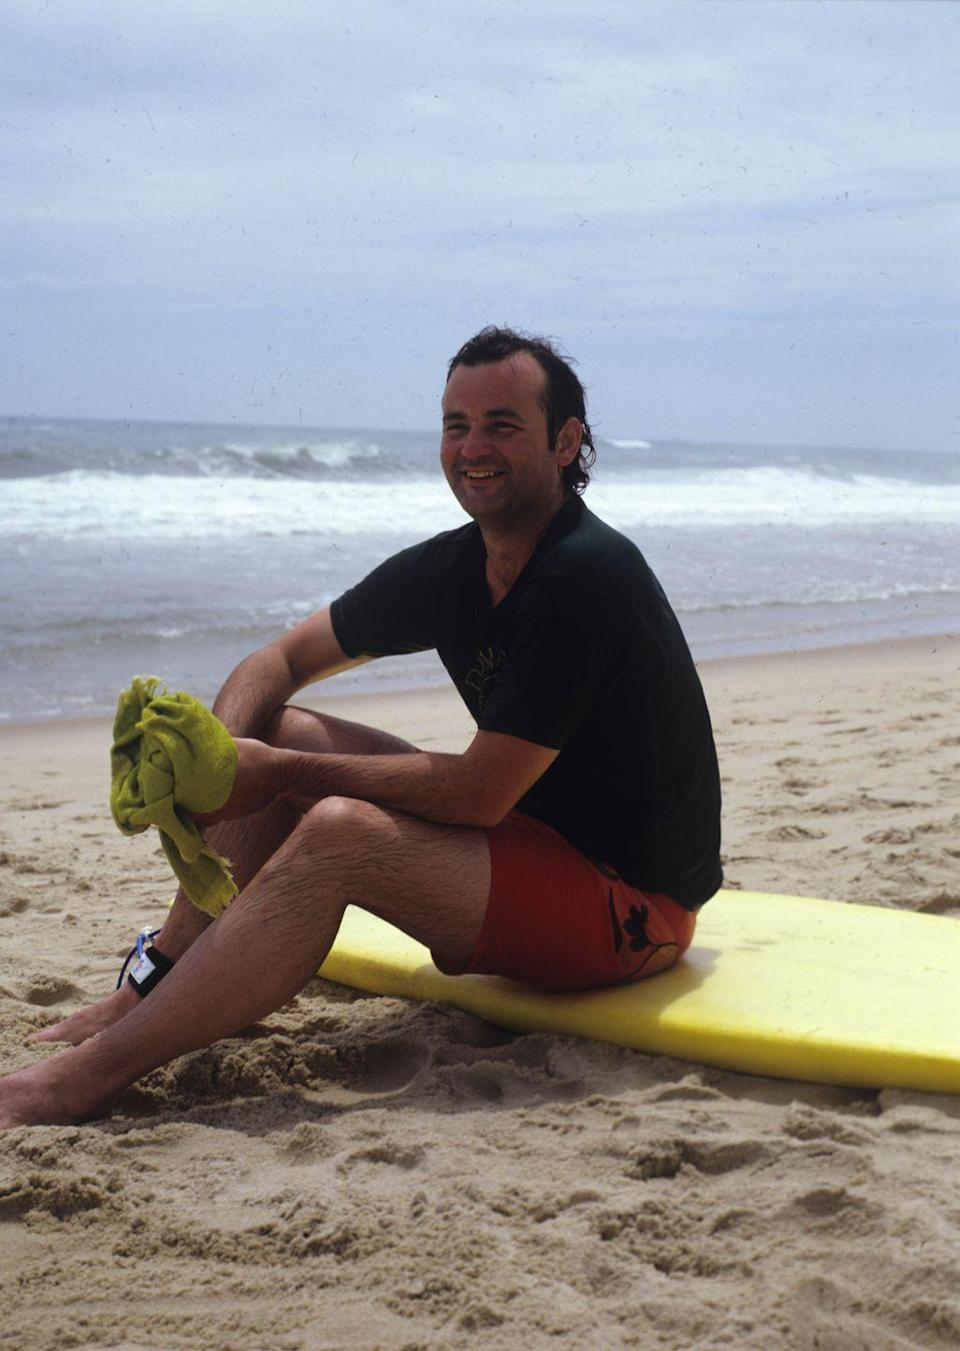 <p>Portrait of Bill Murray, in a t-shirt and swimming trunks, as he sits on a yellow surfboard on the beach during a photoshoot for Rolling Stone magazine, 1981.</p>